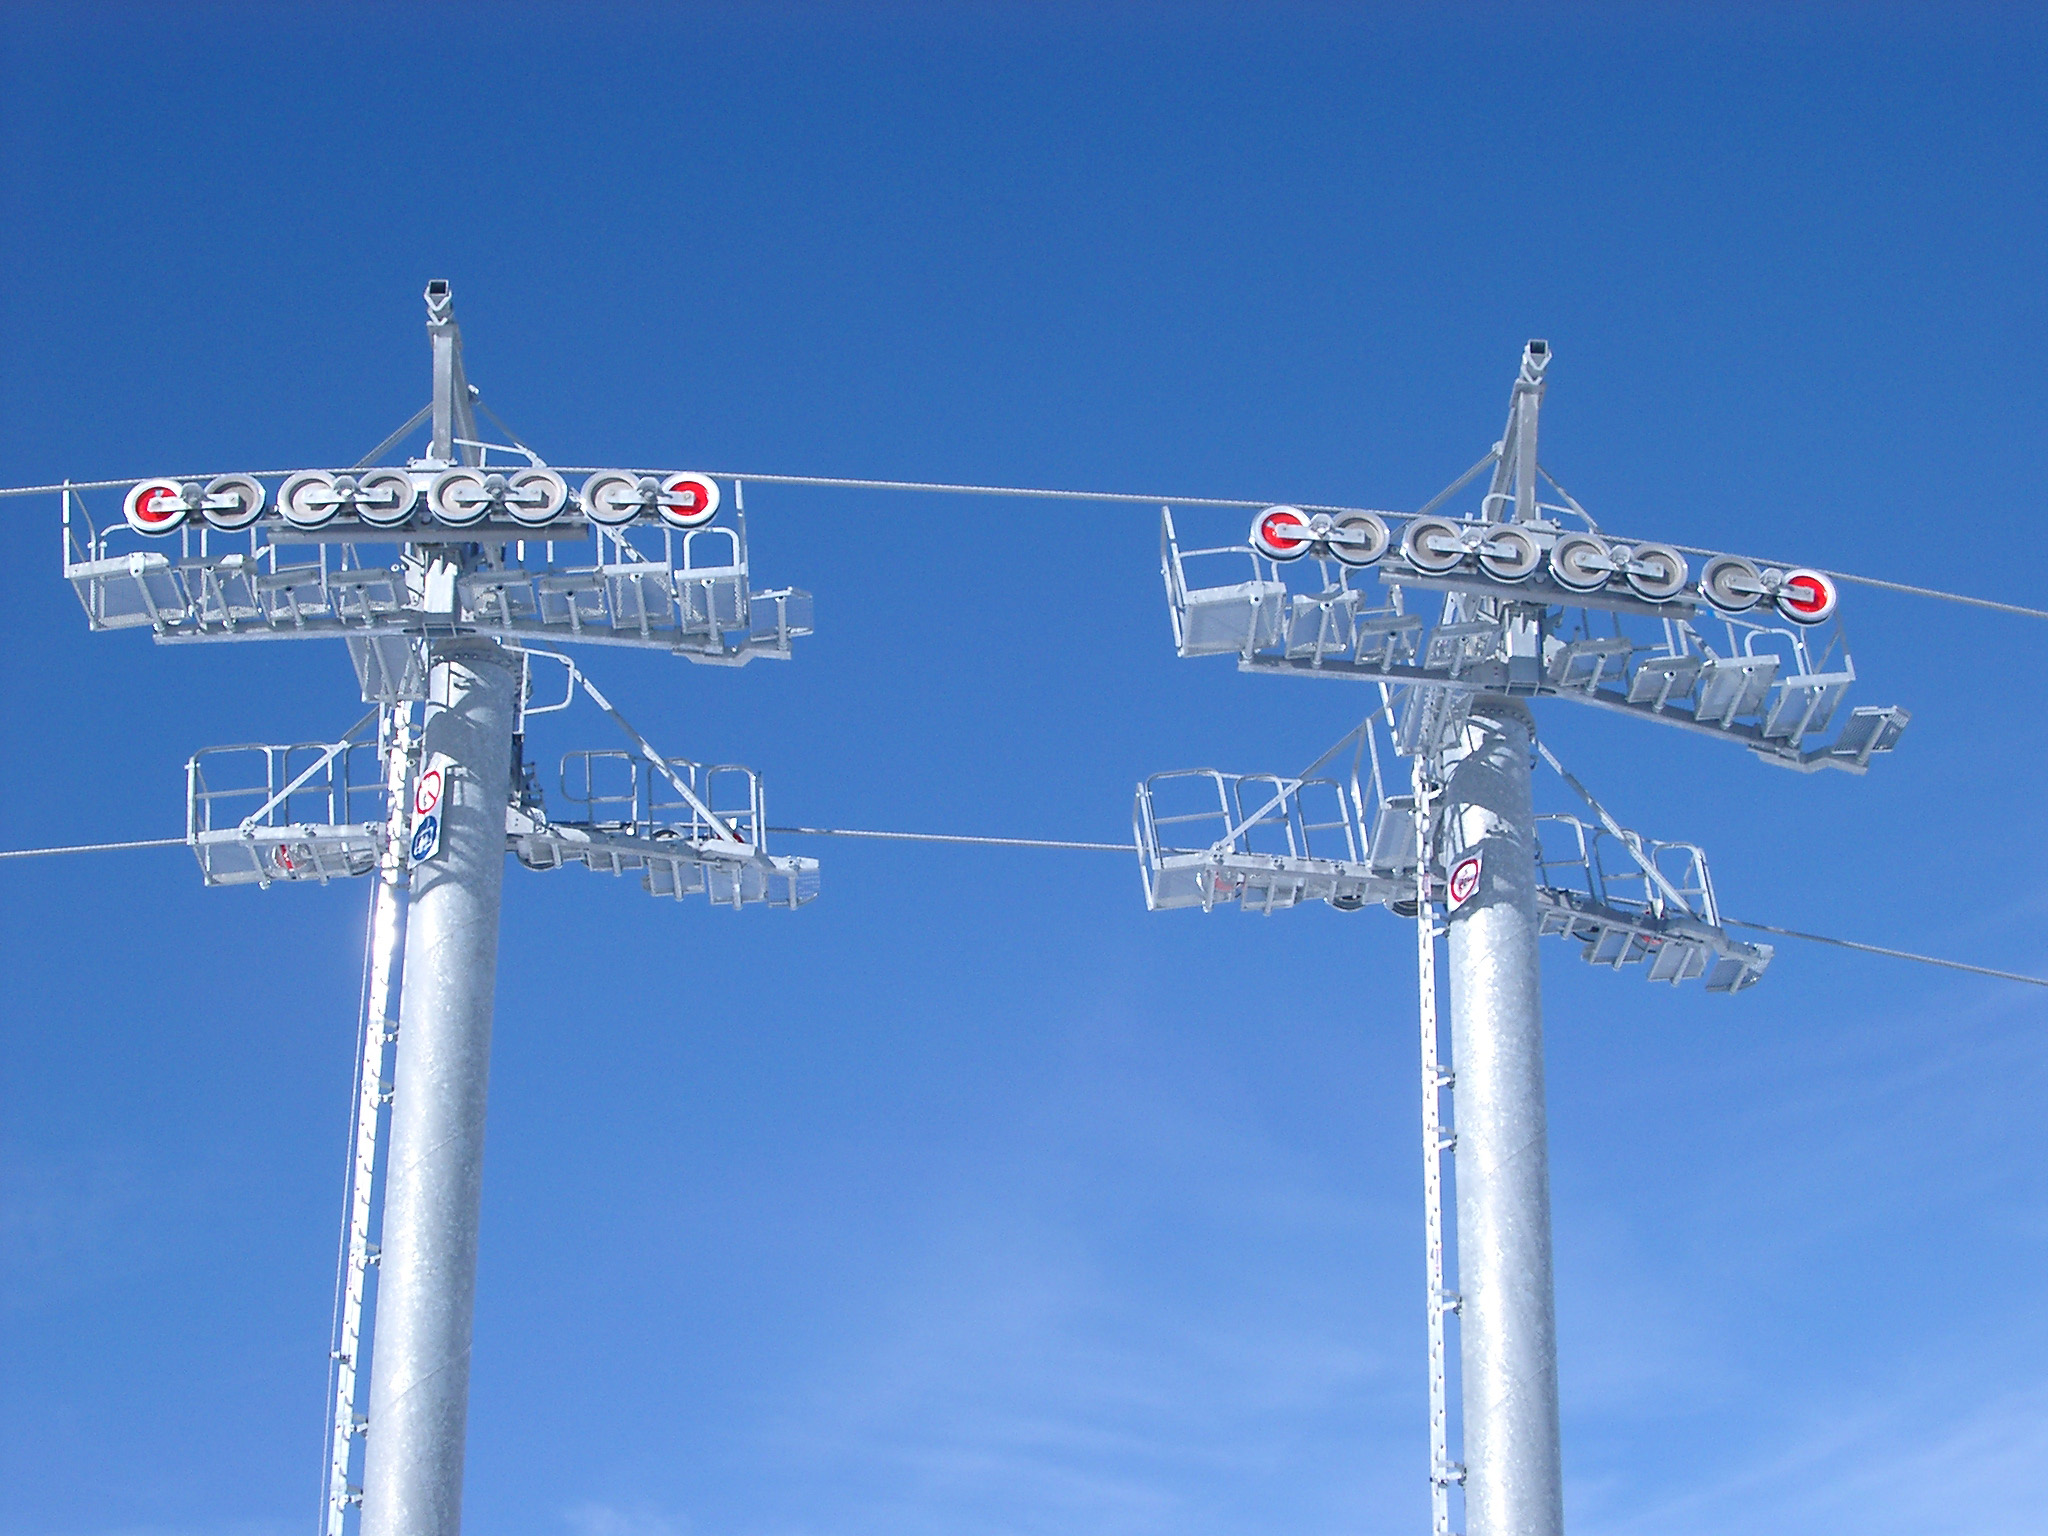 Detail of an alpine chair lift showing the towers and cables with the pulleys against a clear blue sunny winter sky